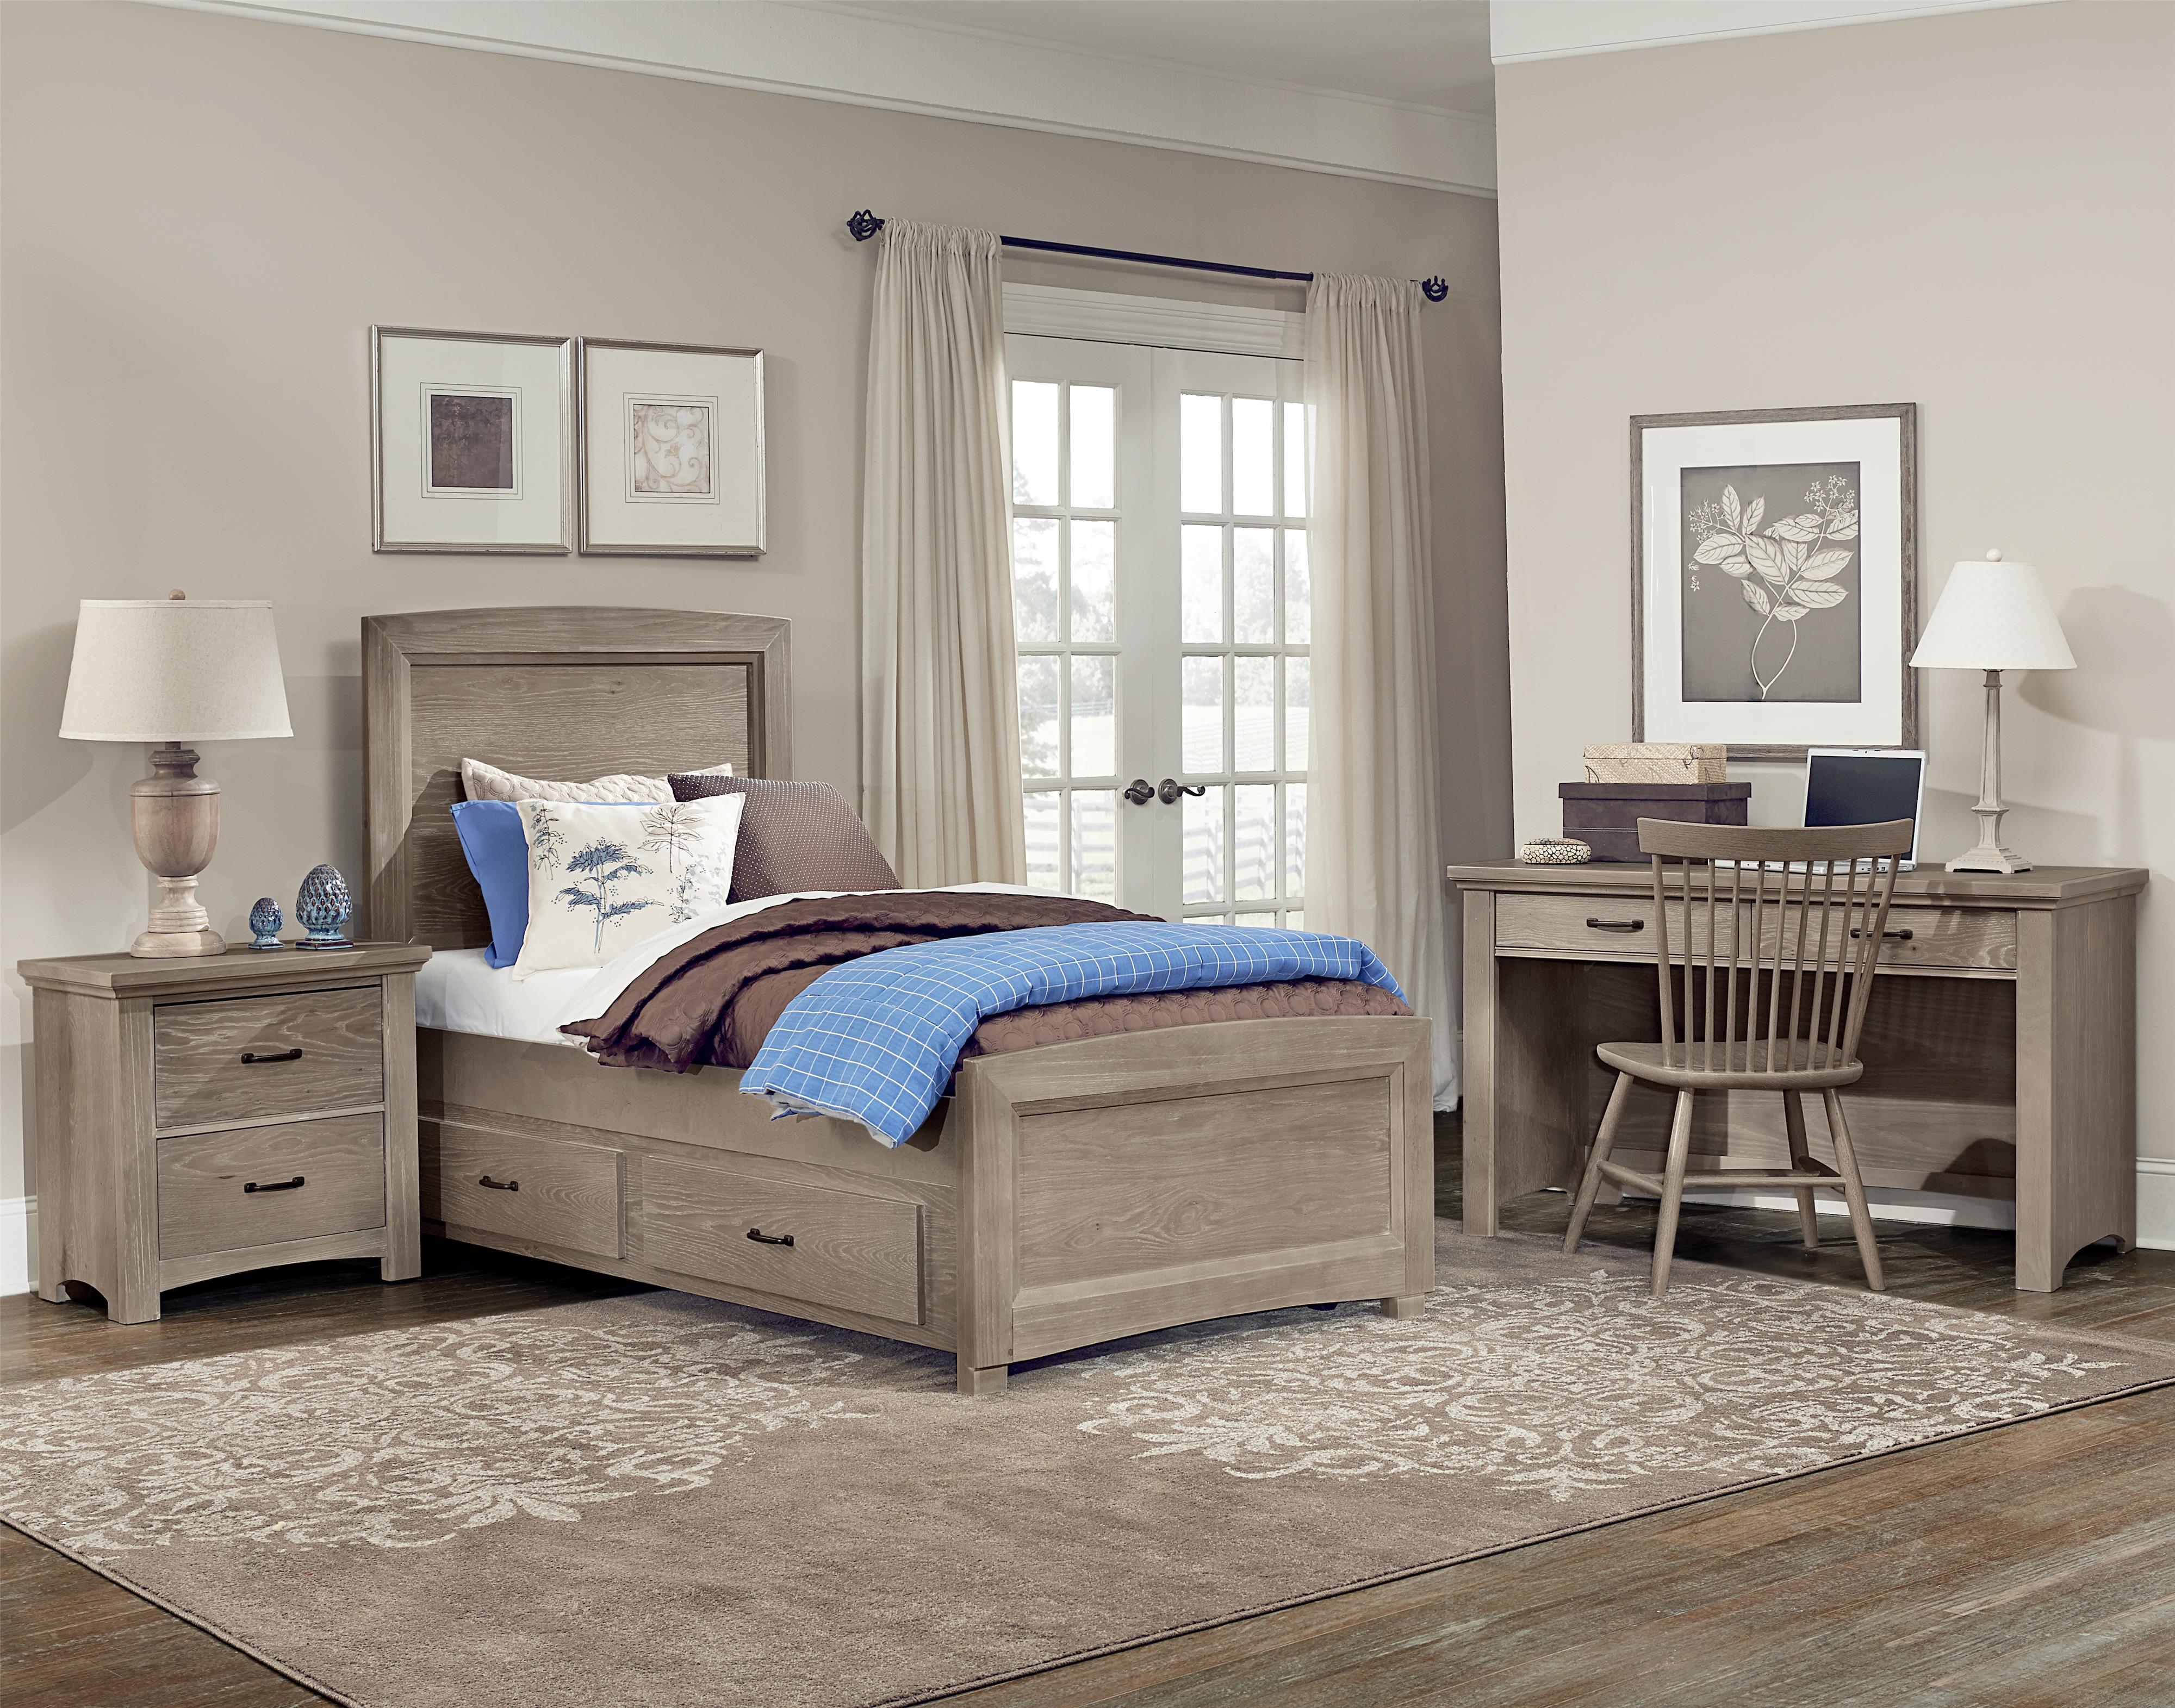 Vaughan Bassett Transitions Twin Bedroom Group Value City Furniture Bedroom Groups